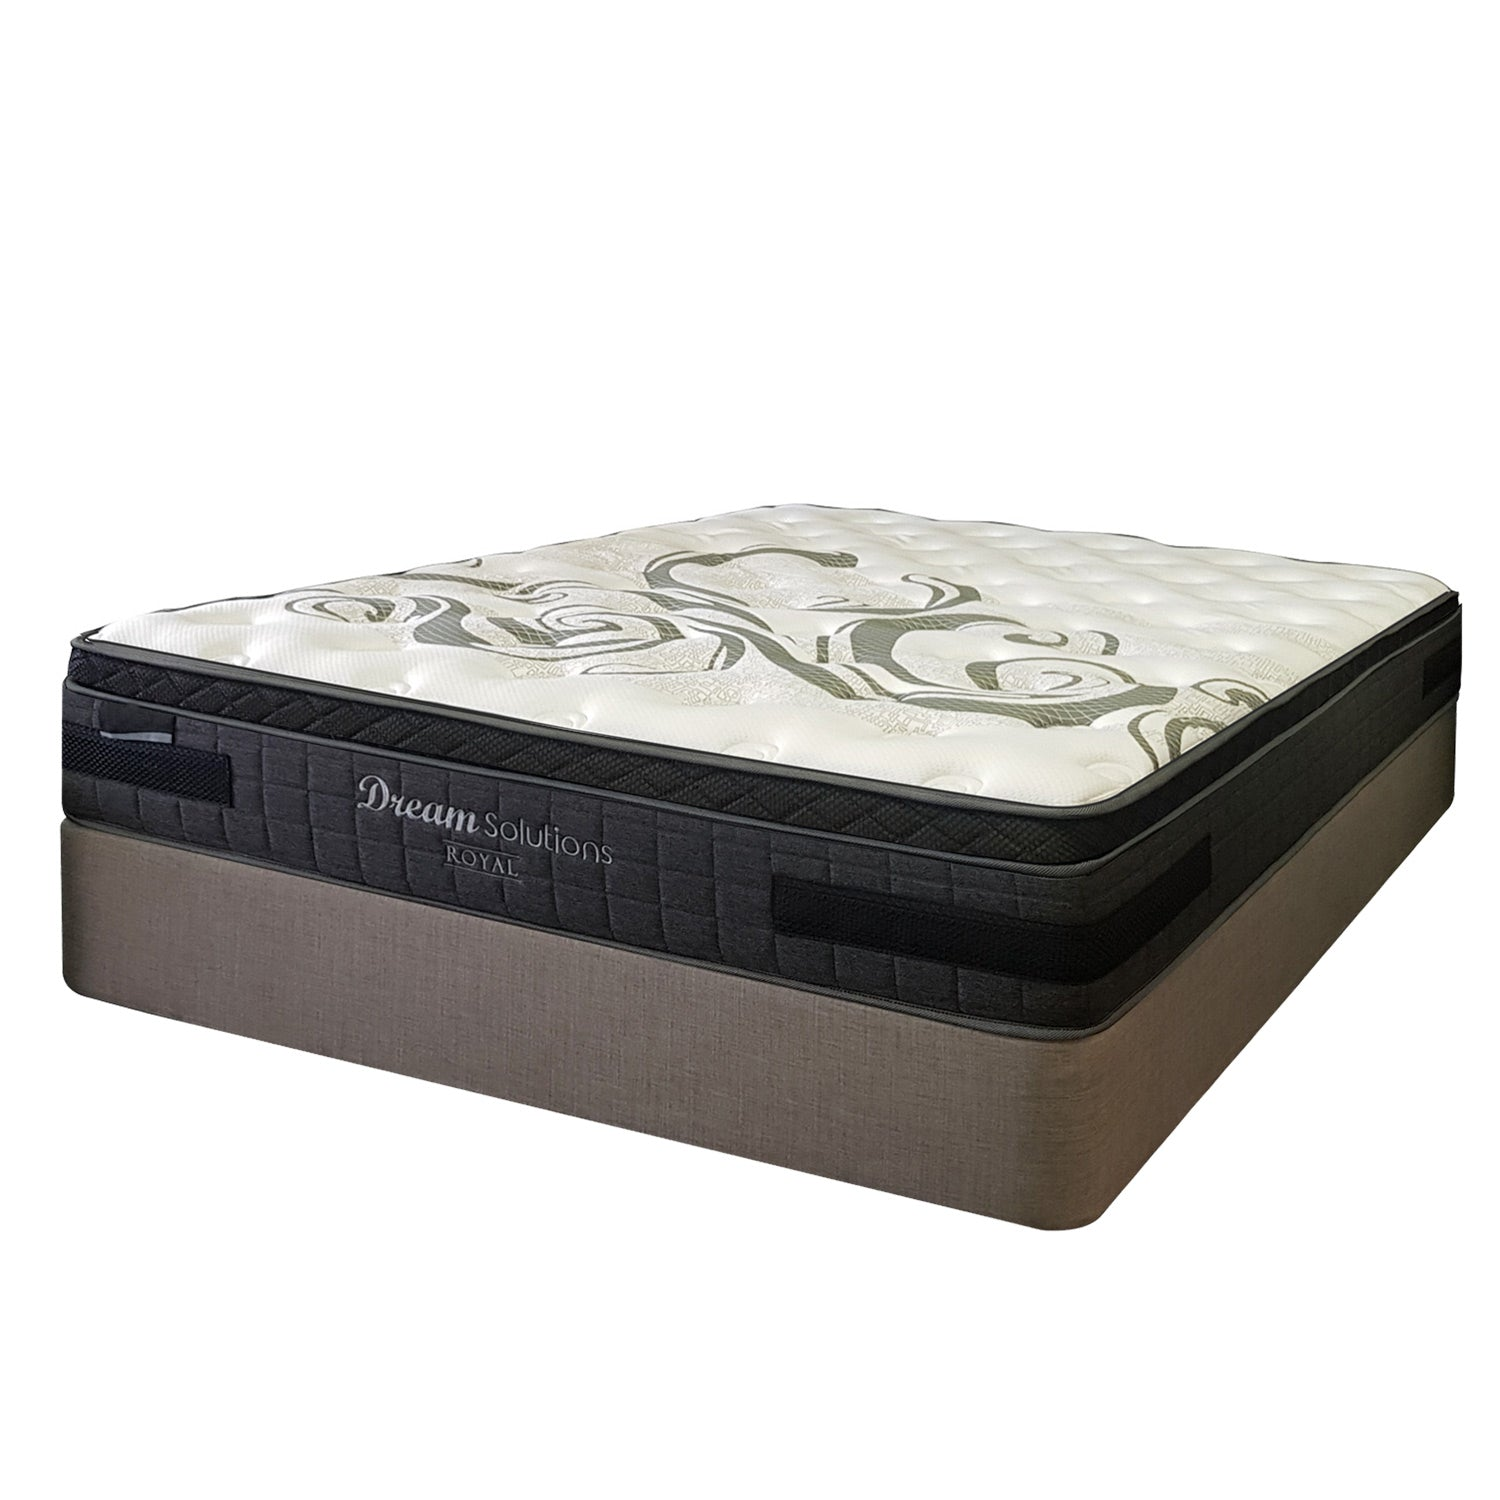 Royal Firm Mattress - The Furniture Store & The Bed Shop